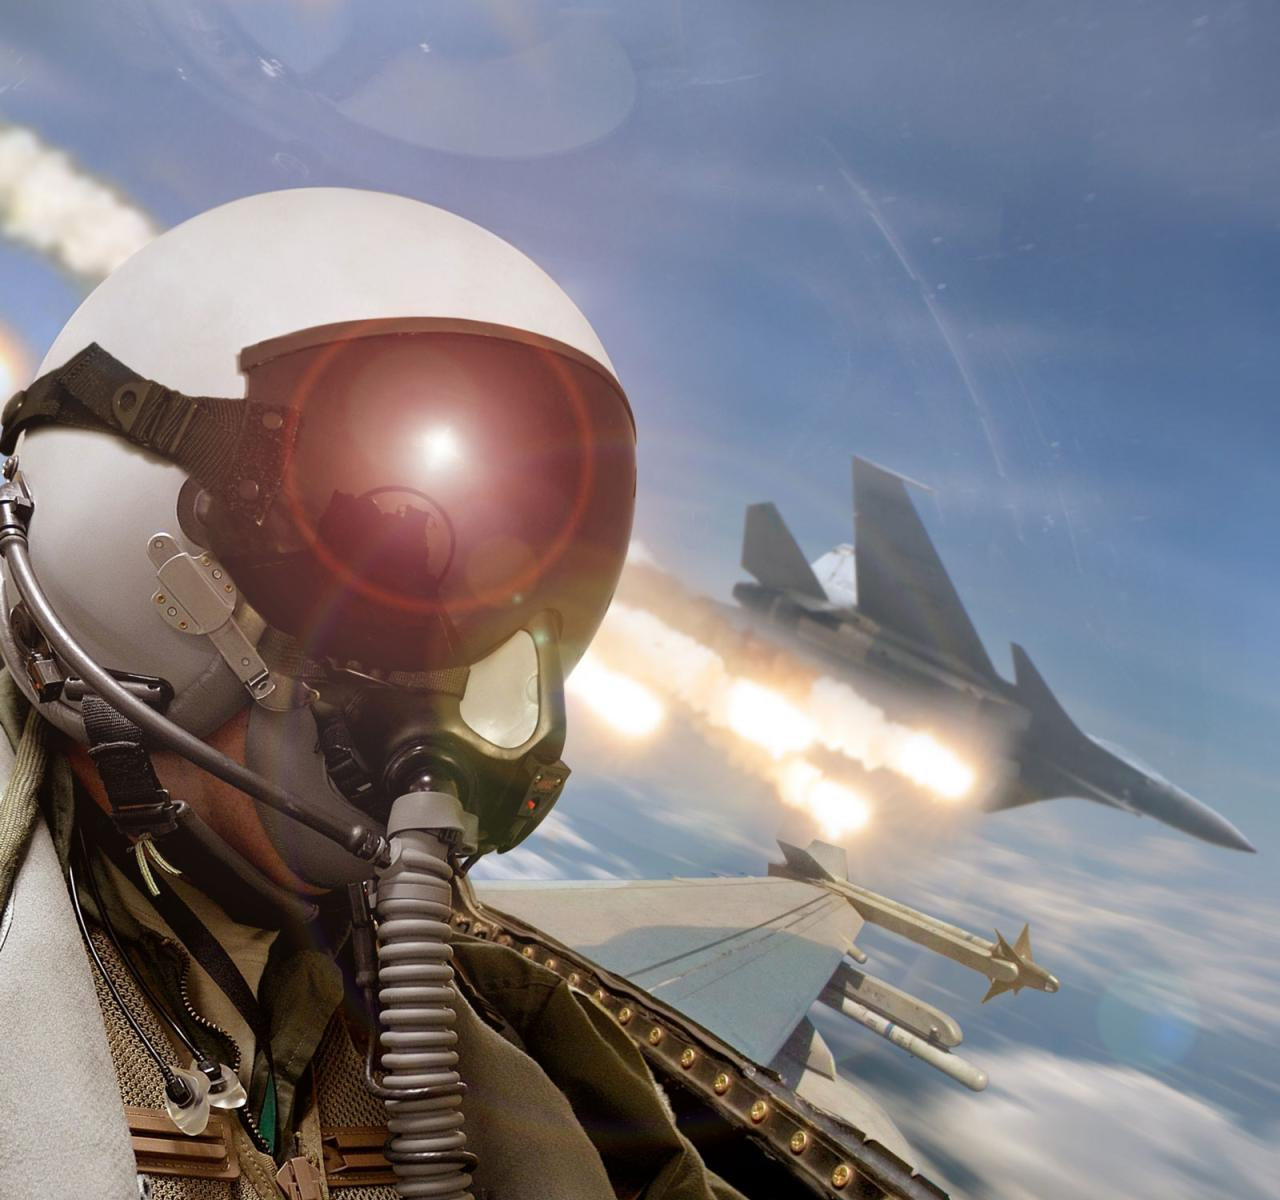 Growing need for improved laser warning systems to detect incoming threats of precision-guided munitions